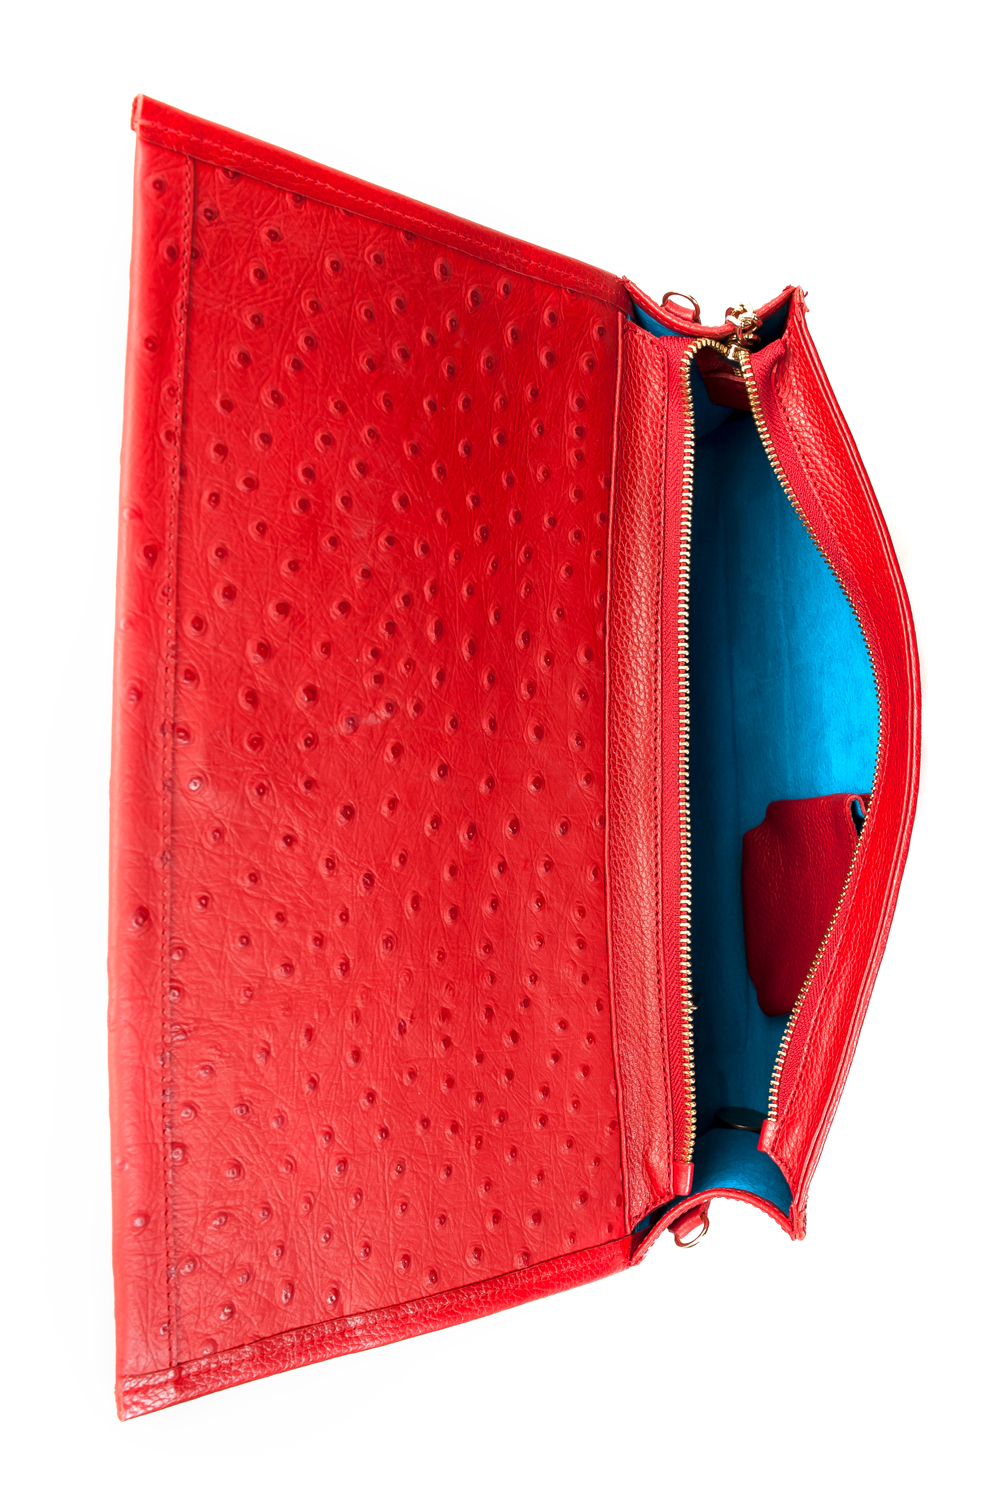 'Cara' Envelope Clutch in Red Ostrich Print Leather | Mel Boteri | Interior View